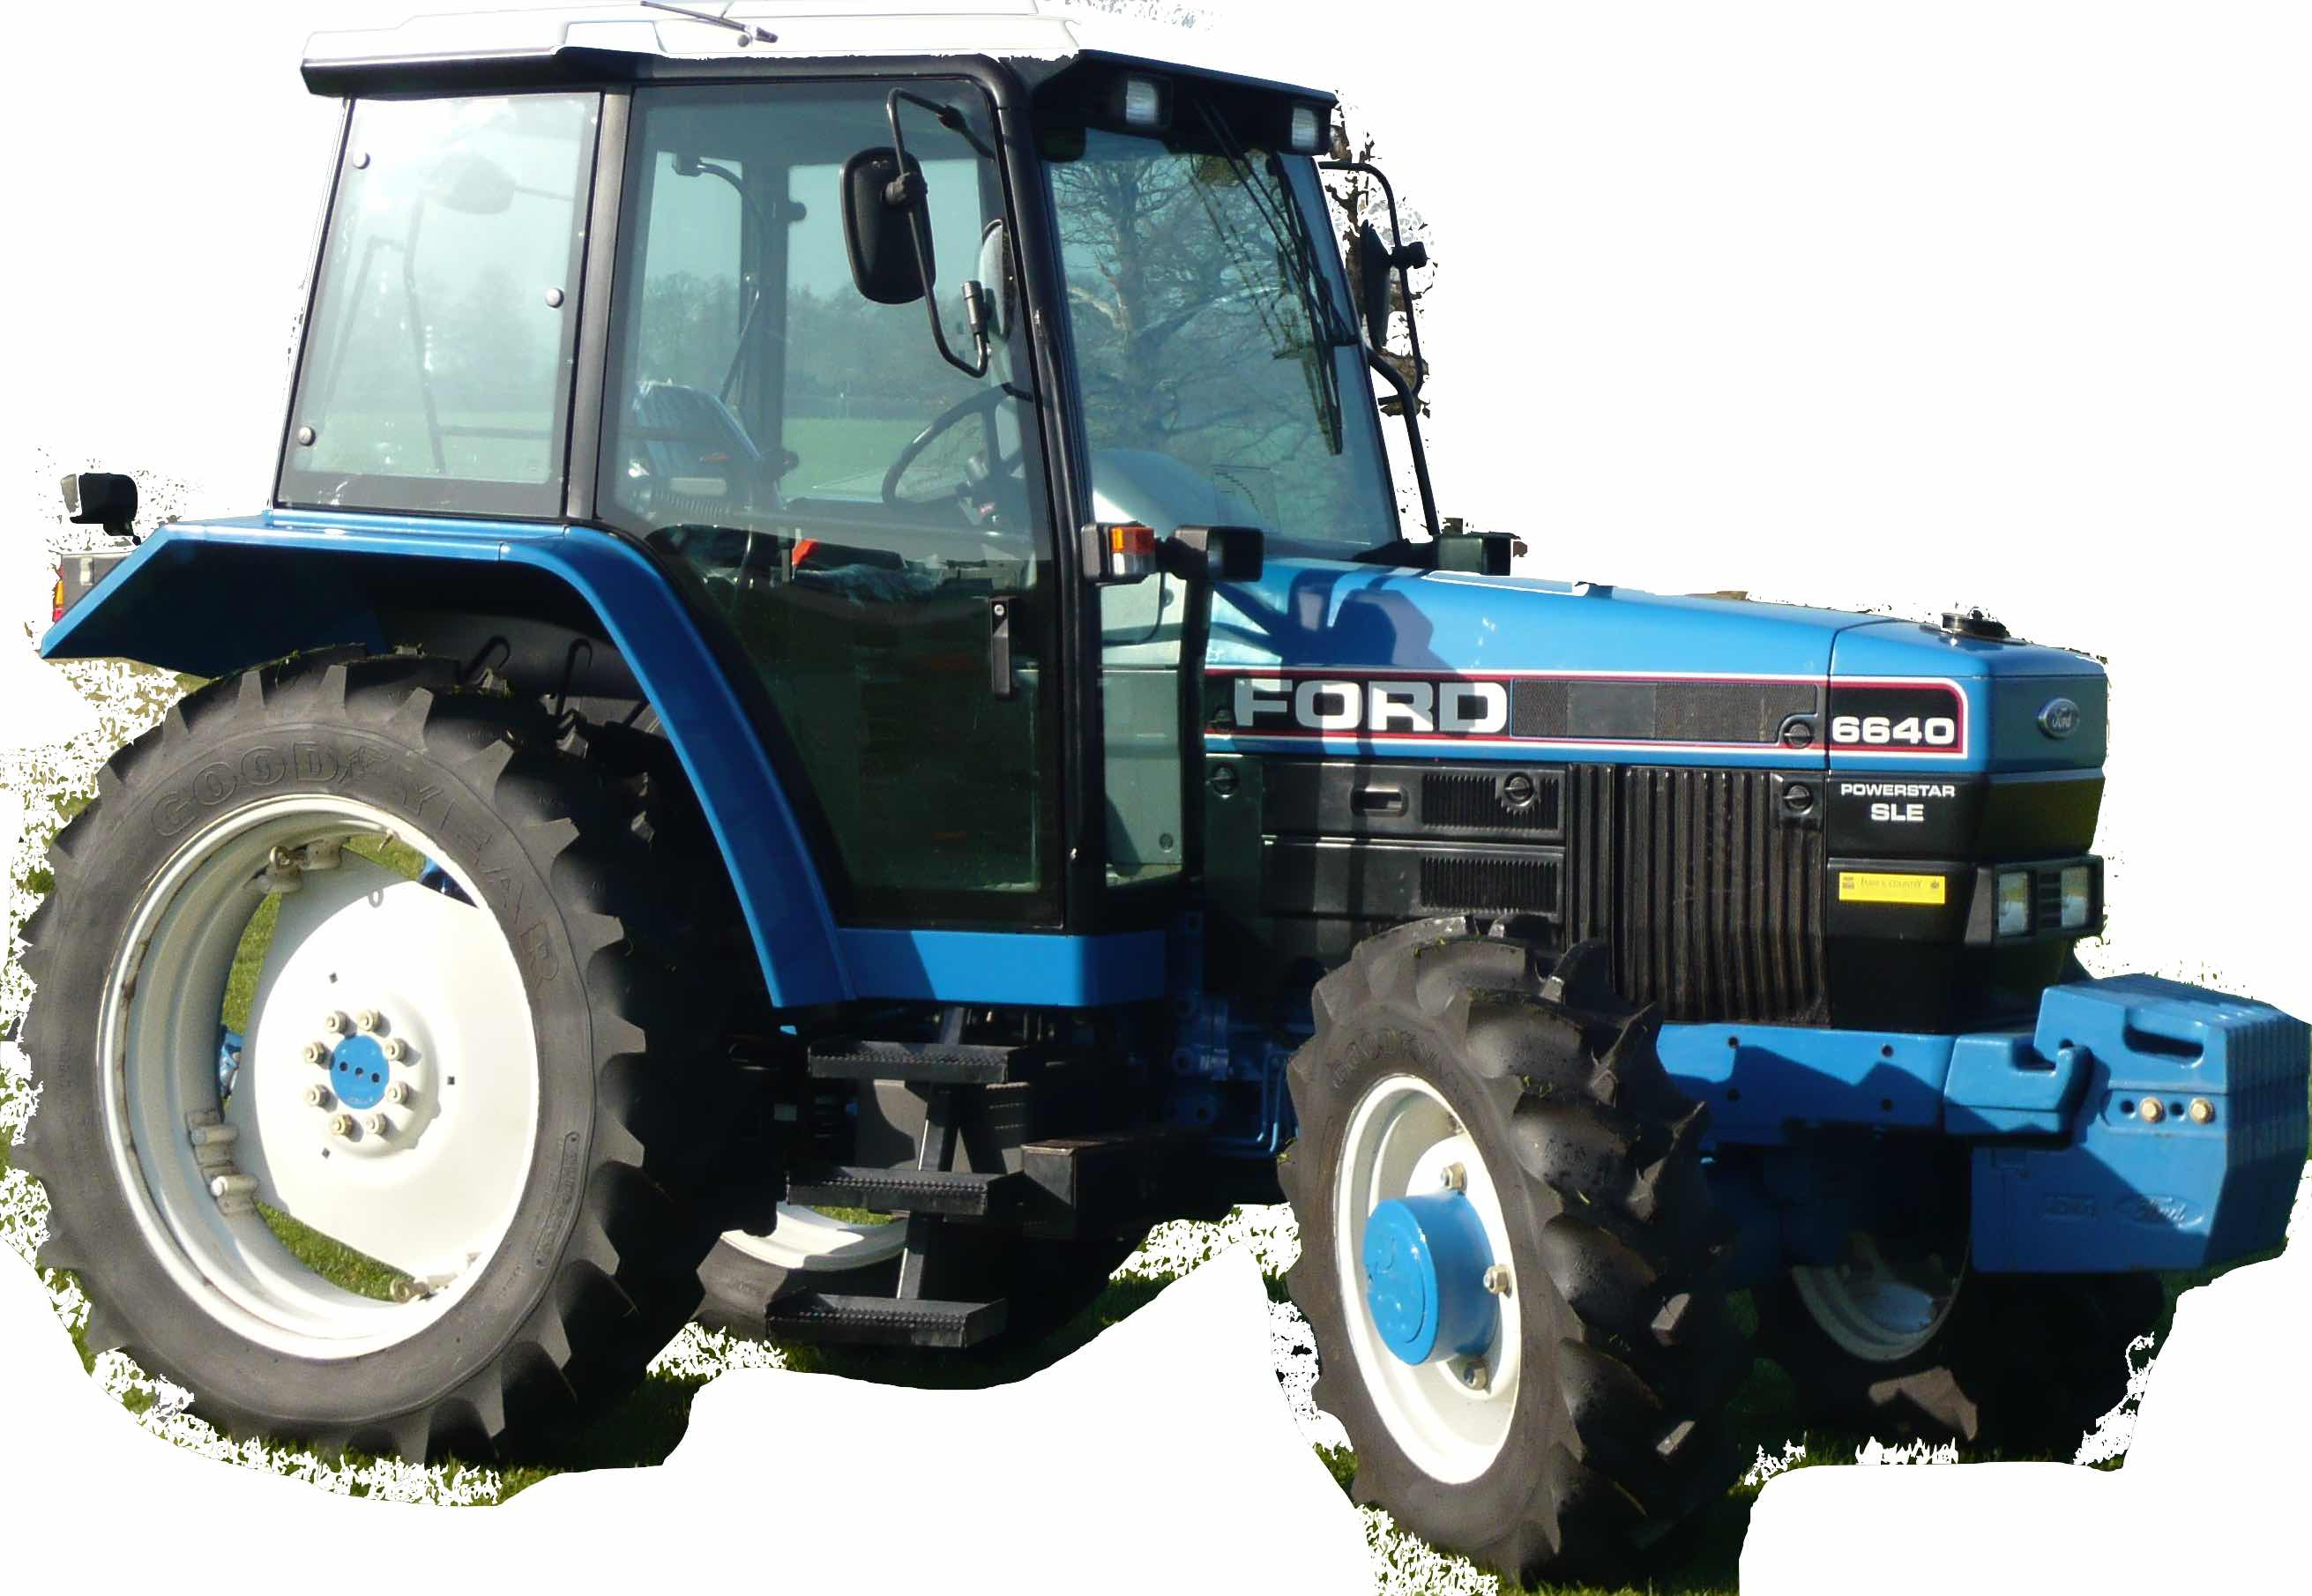 Ford New Holland 40 Series (5640, 6640, 7740, 7840, 8240, 8340) Tractors  Factory Service & Shop Manual